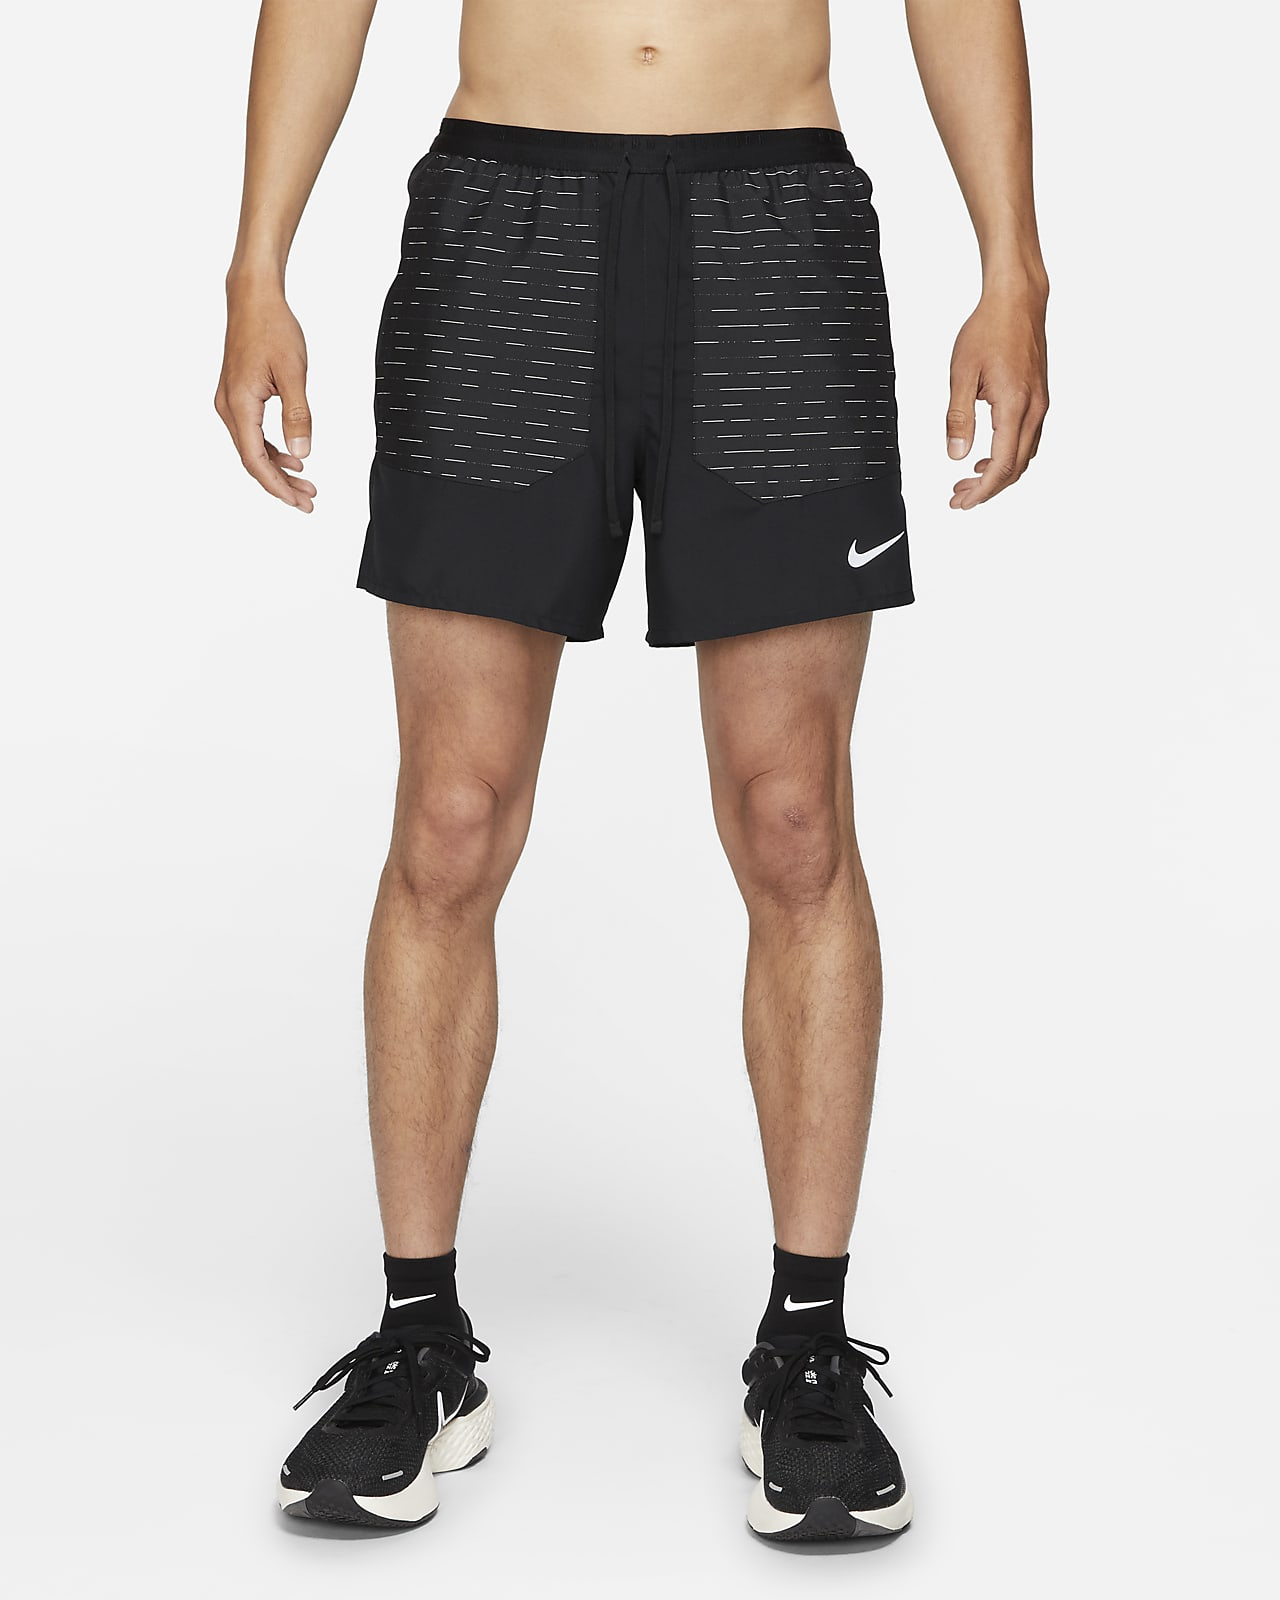 Nike Dri-FIT Flex Stride Run Division Men's Brief-Lined 13cm (approx.) Running Shorts